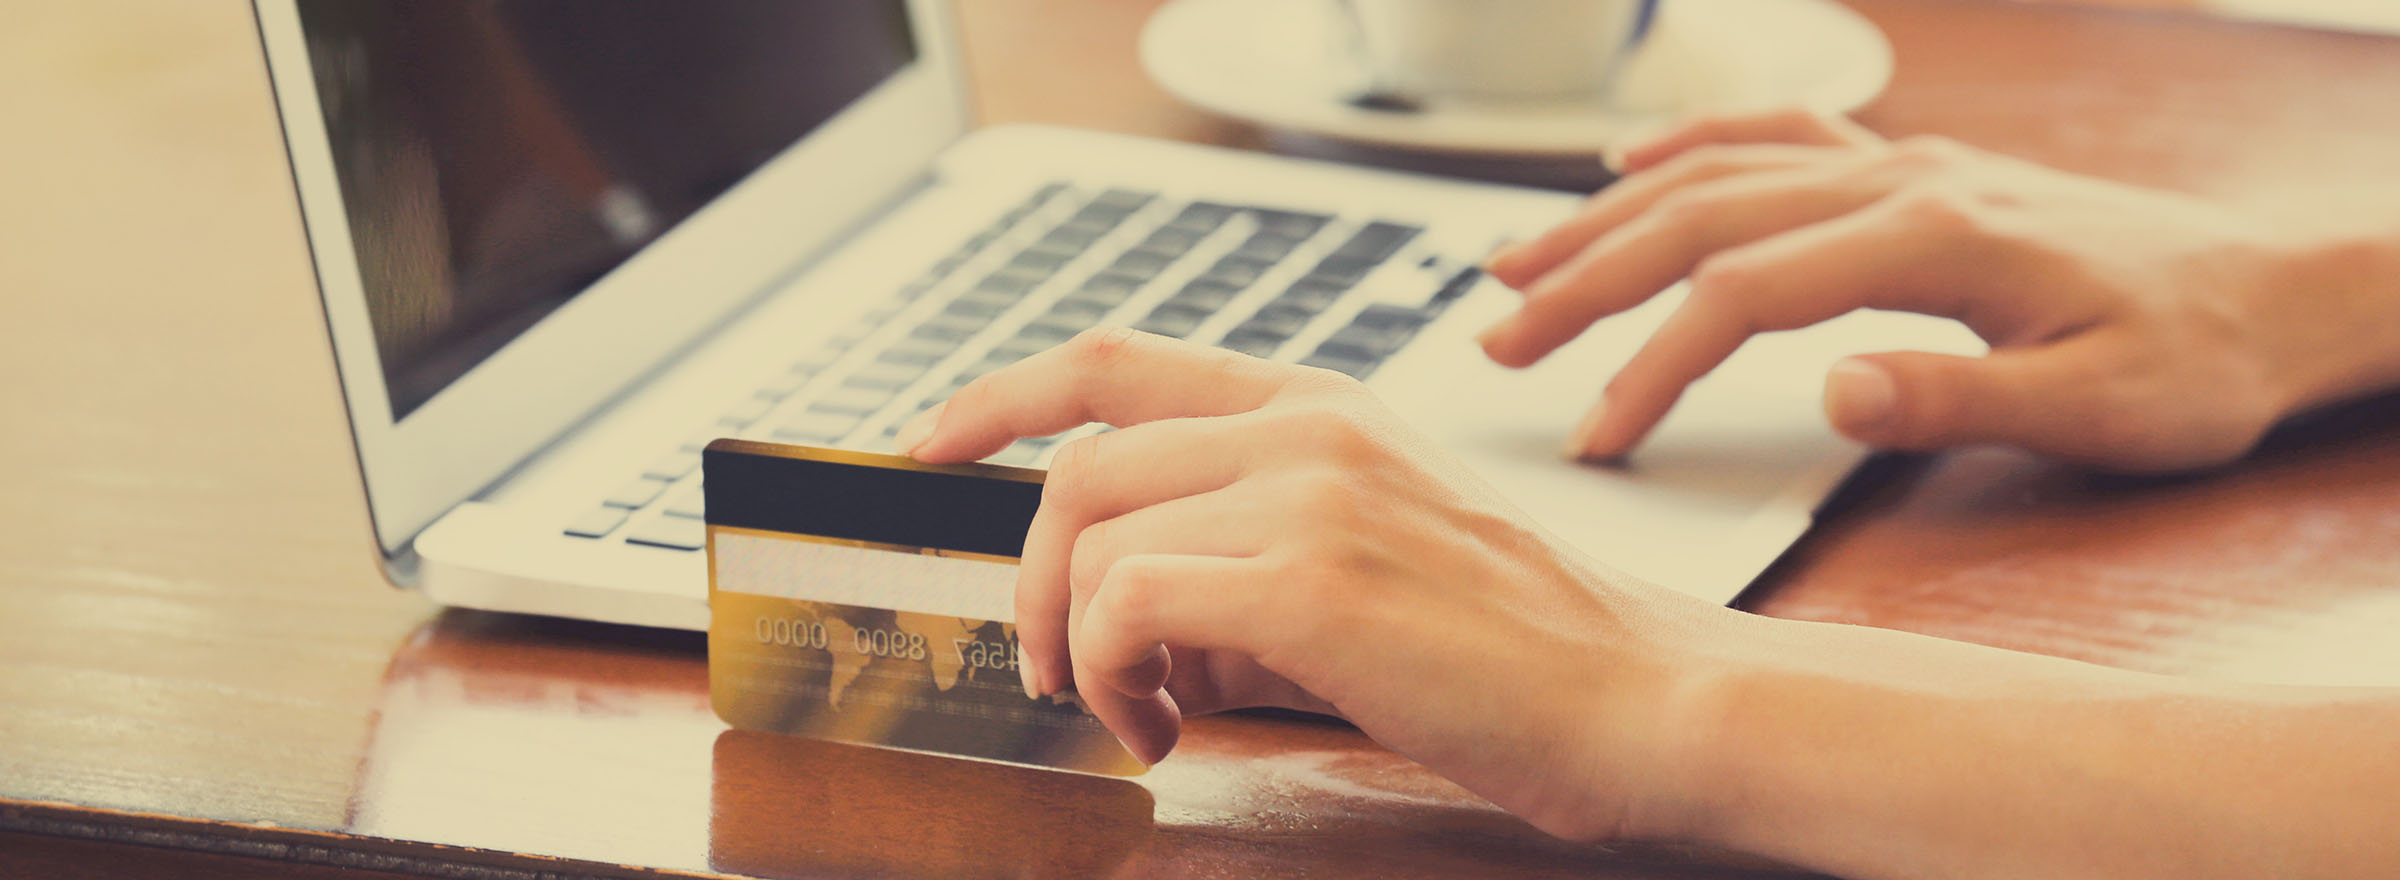 person holding a credit card in left hand and typing on laptop with right hand